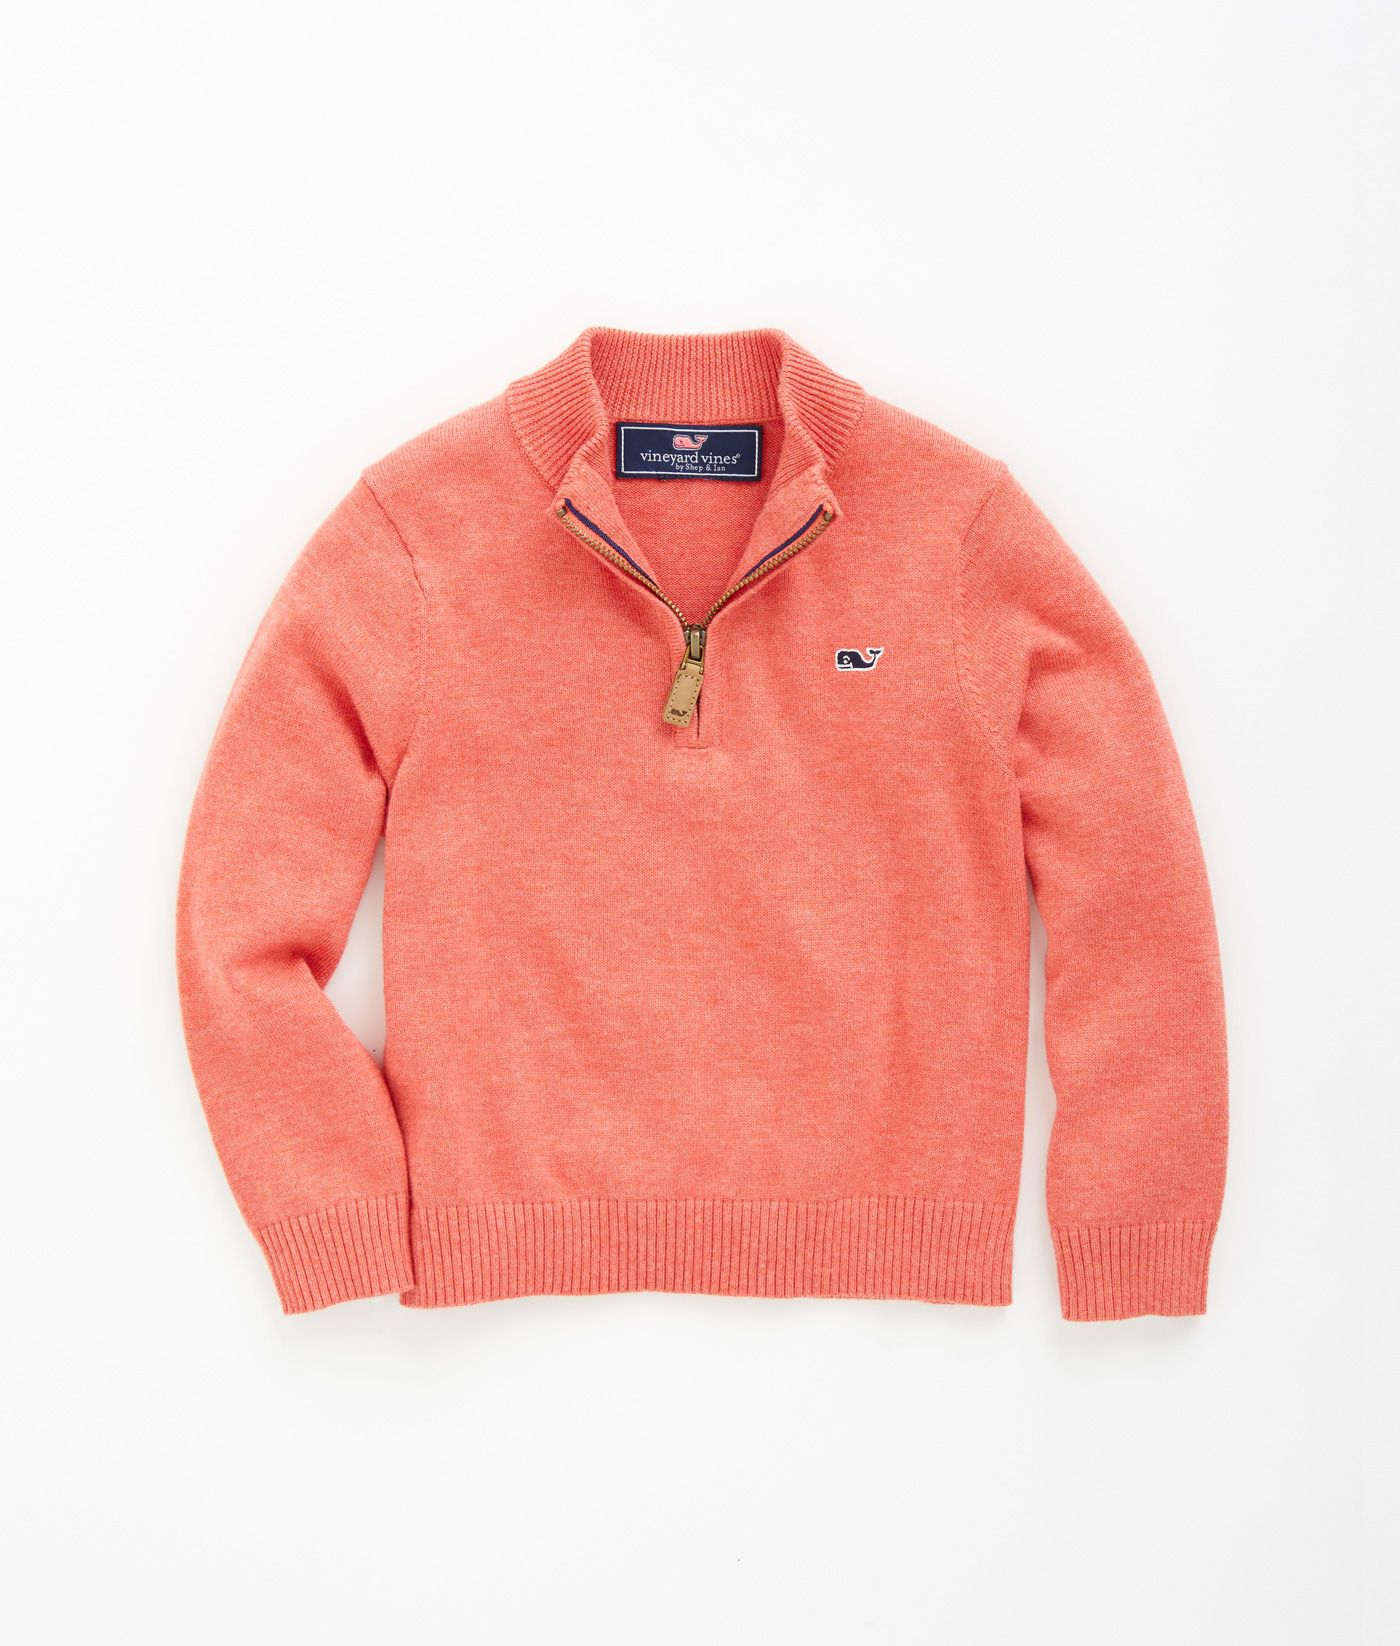 Shop Pullovers: Harbor Point 1/4-Zip Sweater for Boys   Vineyard Vines